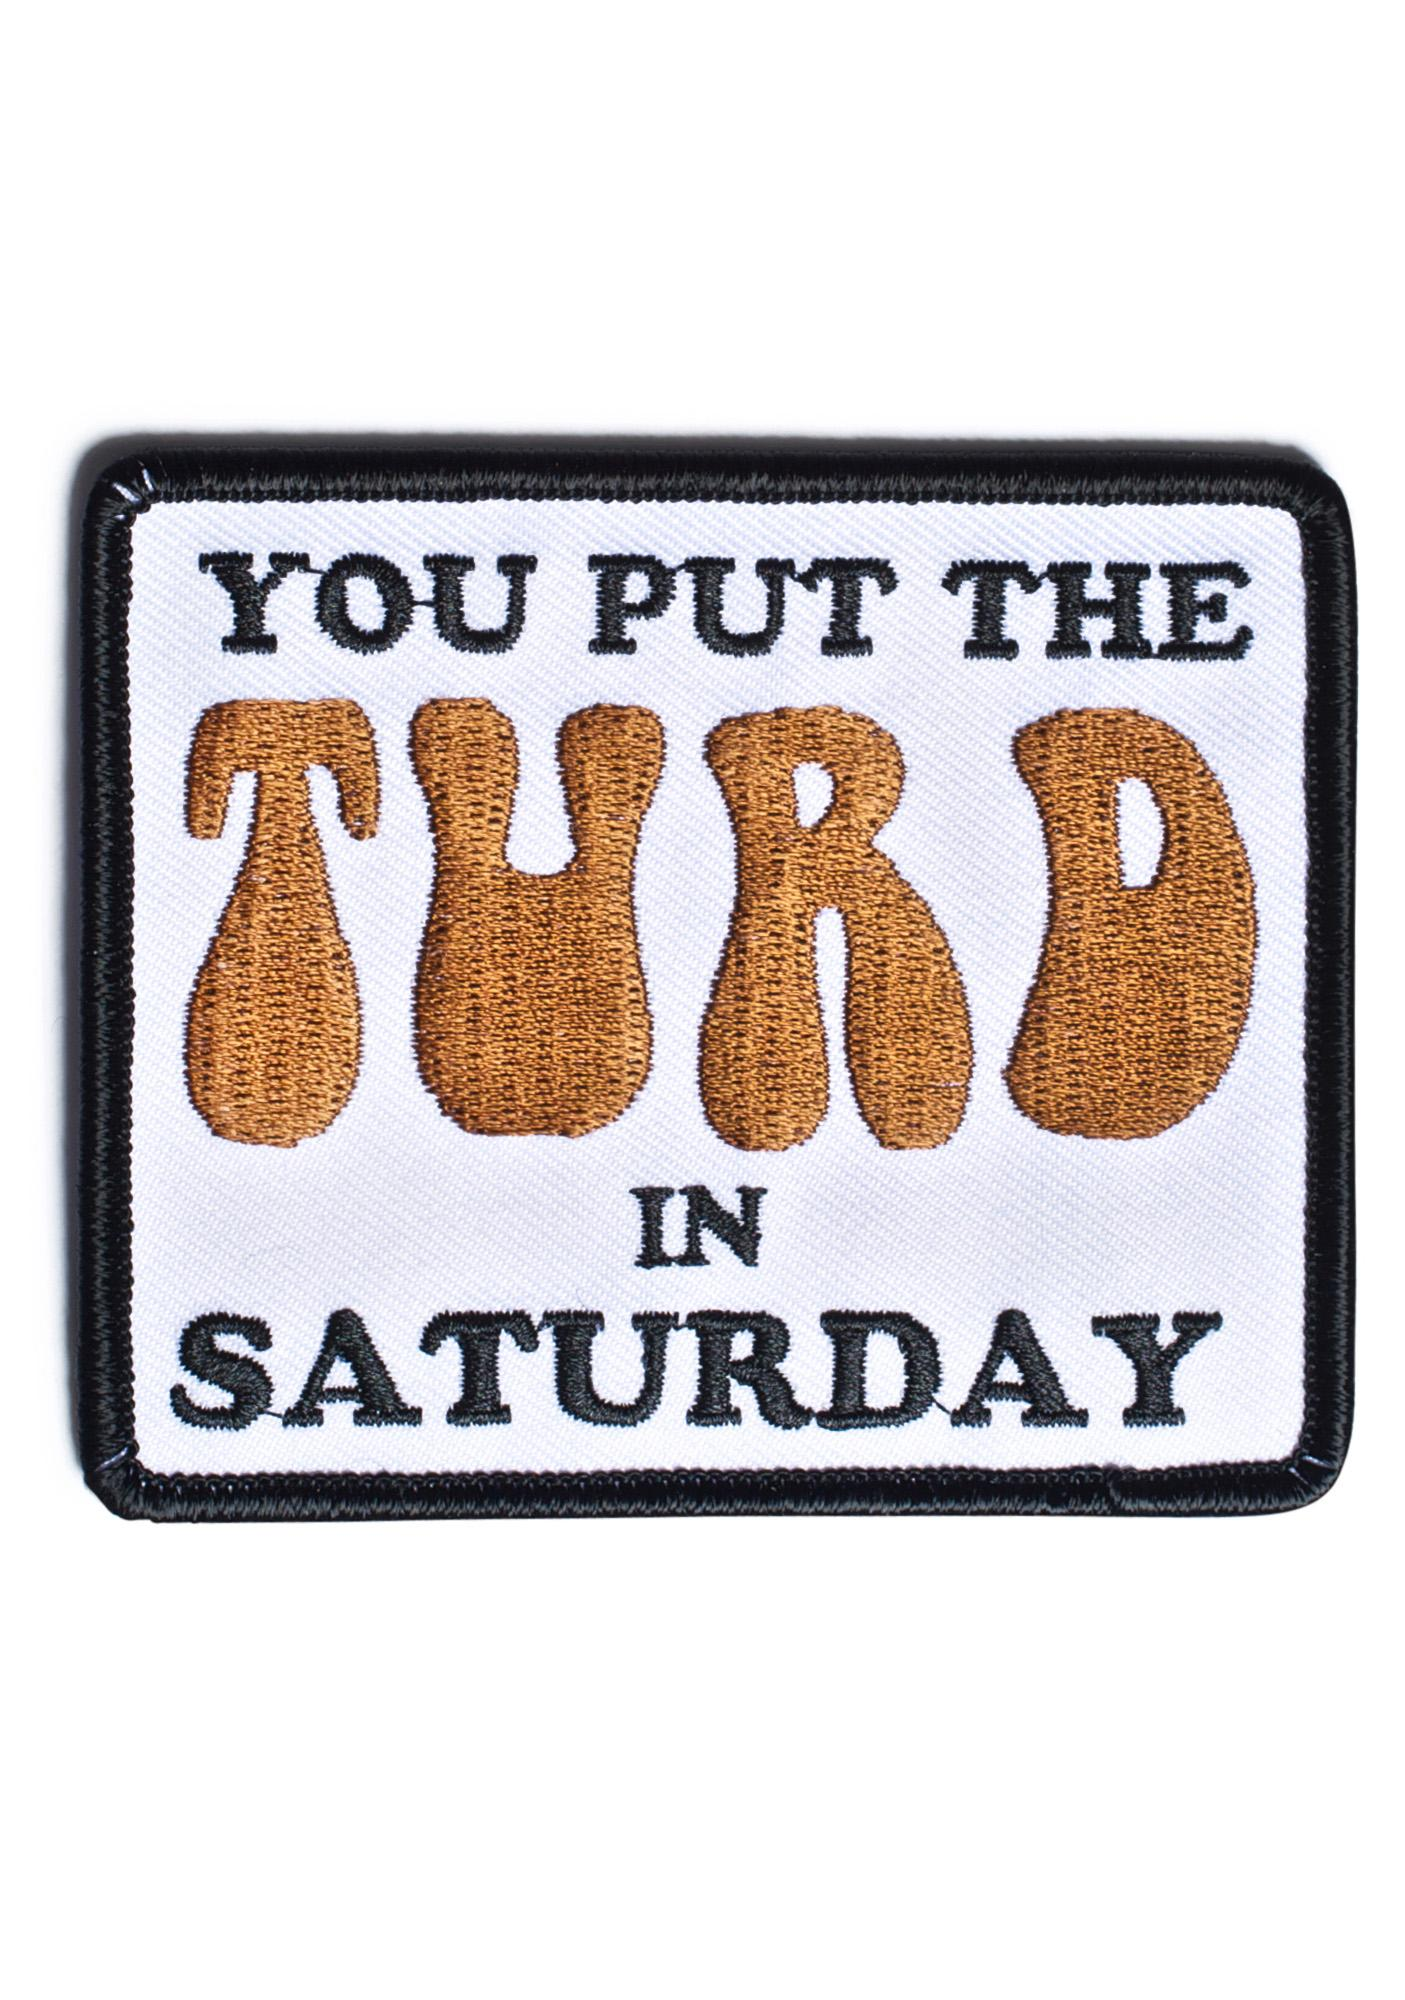 Saturday Patch